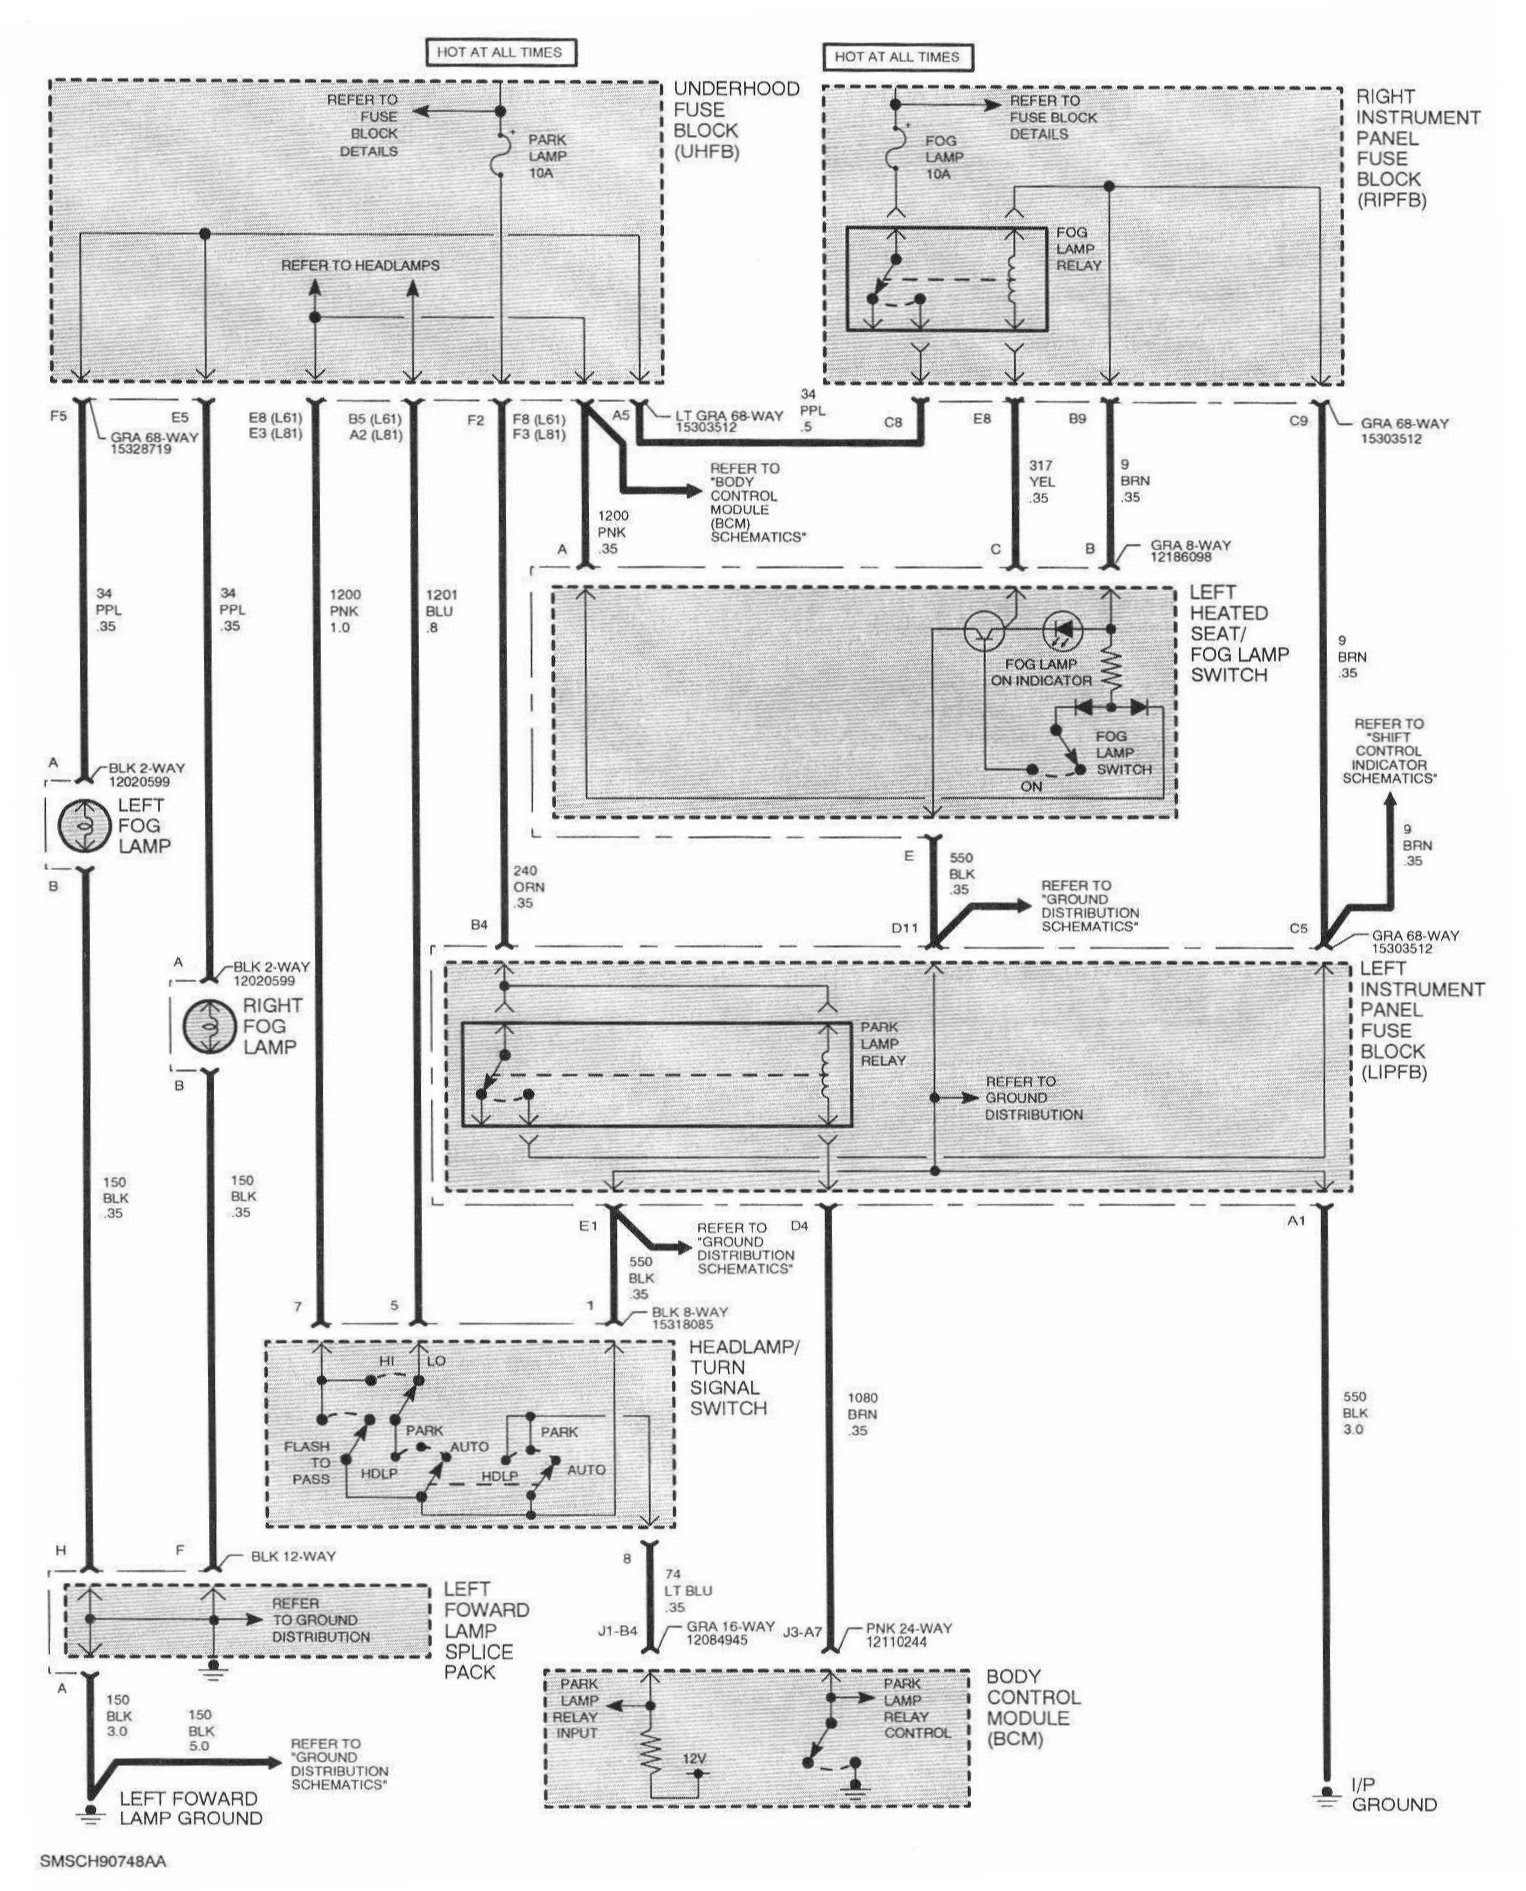 DIAGRAM] Saturn Sl2 Wiring Diagram Picture FULL Version HD Quality Diagram  Picture - CINCHDIAGRAMS.LUCB.FRcinchdiagrams.lucb.fr